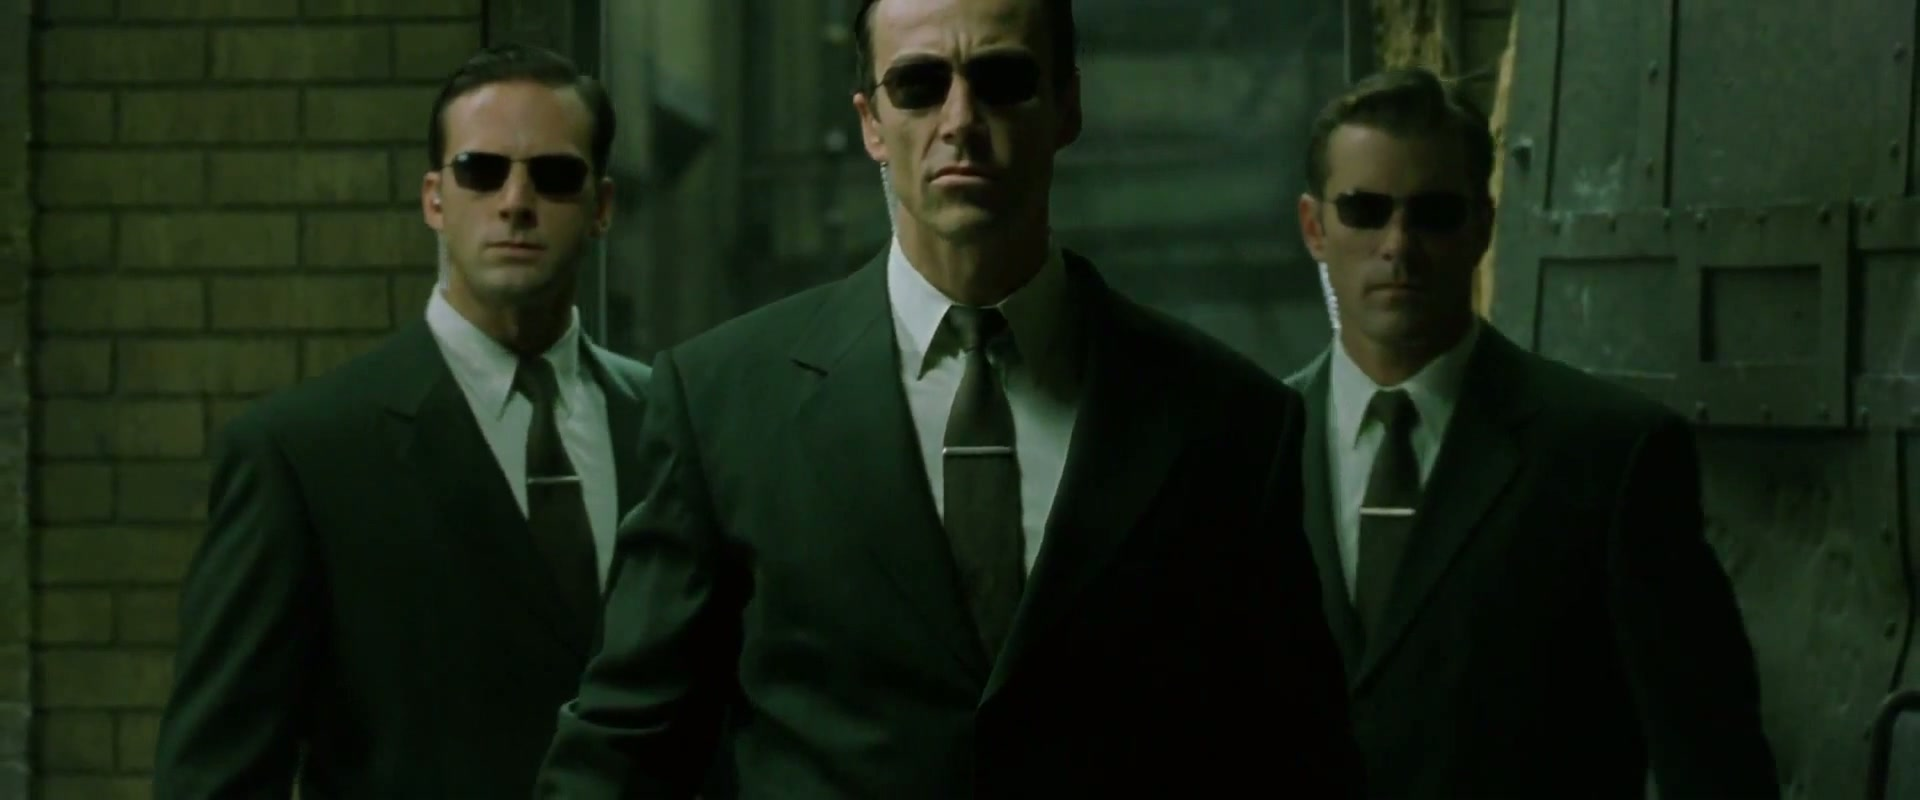 http://img1.wikia.nocookie.net/__cb20110811034829/matrix/images/b/b6/The.Matrix.Reloaded.2003.HDDVD.1080p.x264-iLL.sample.flv_1173.jpg